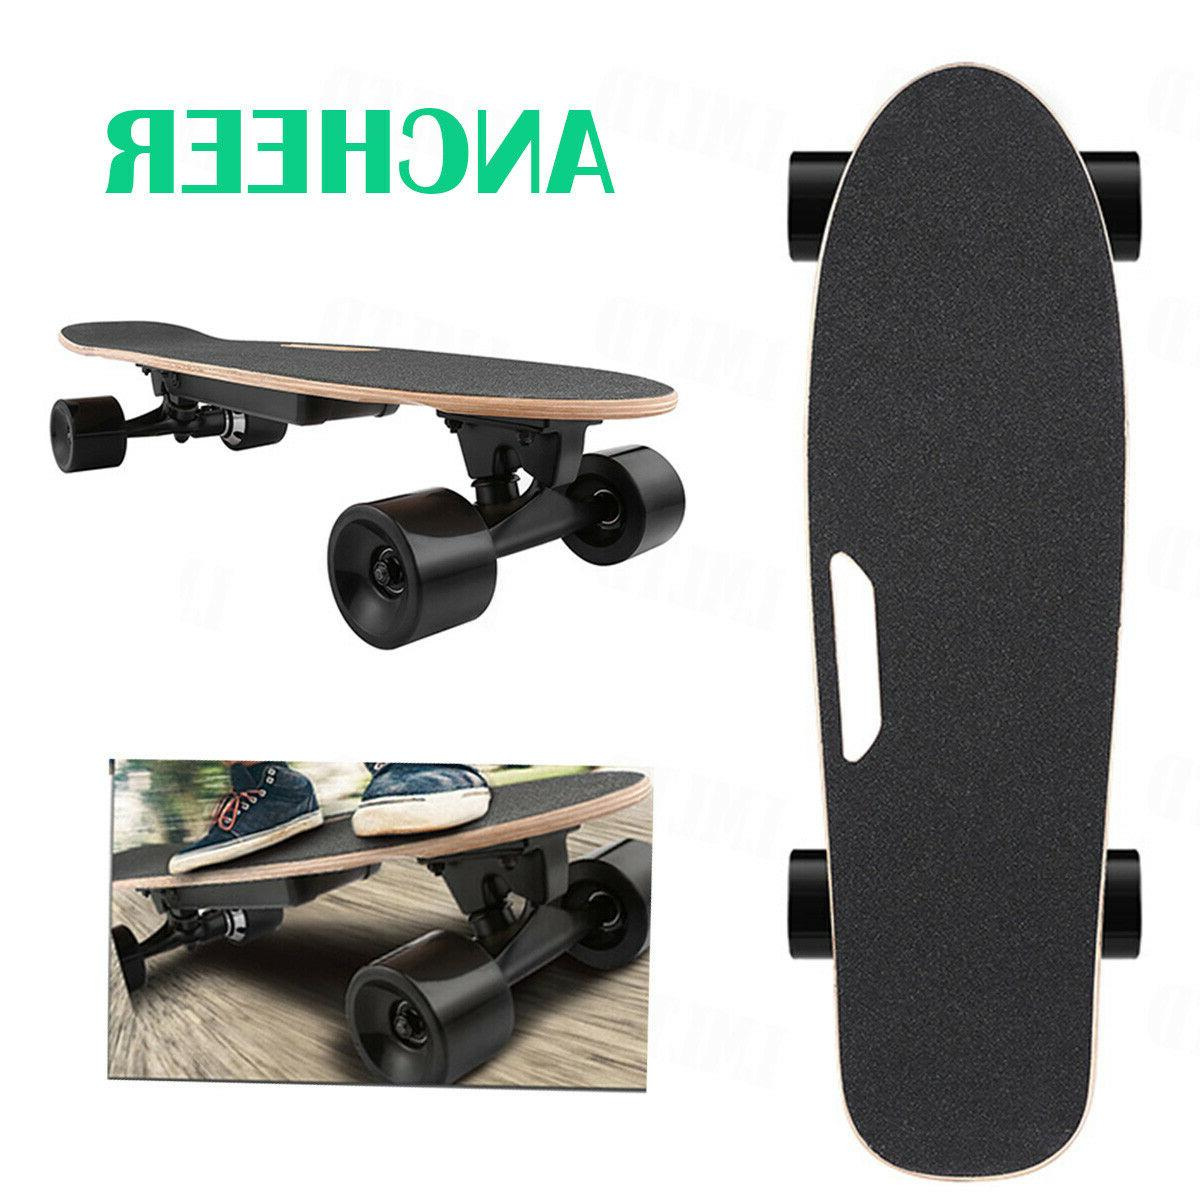 electric skateboard wireless remote control dual motor